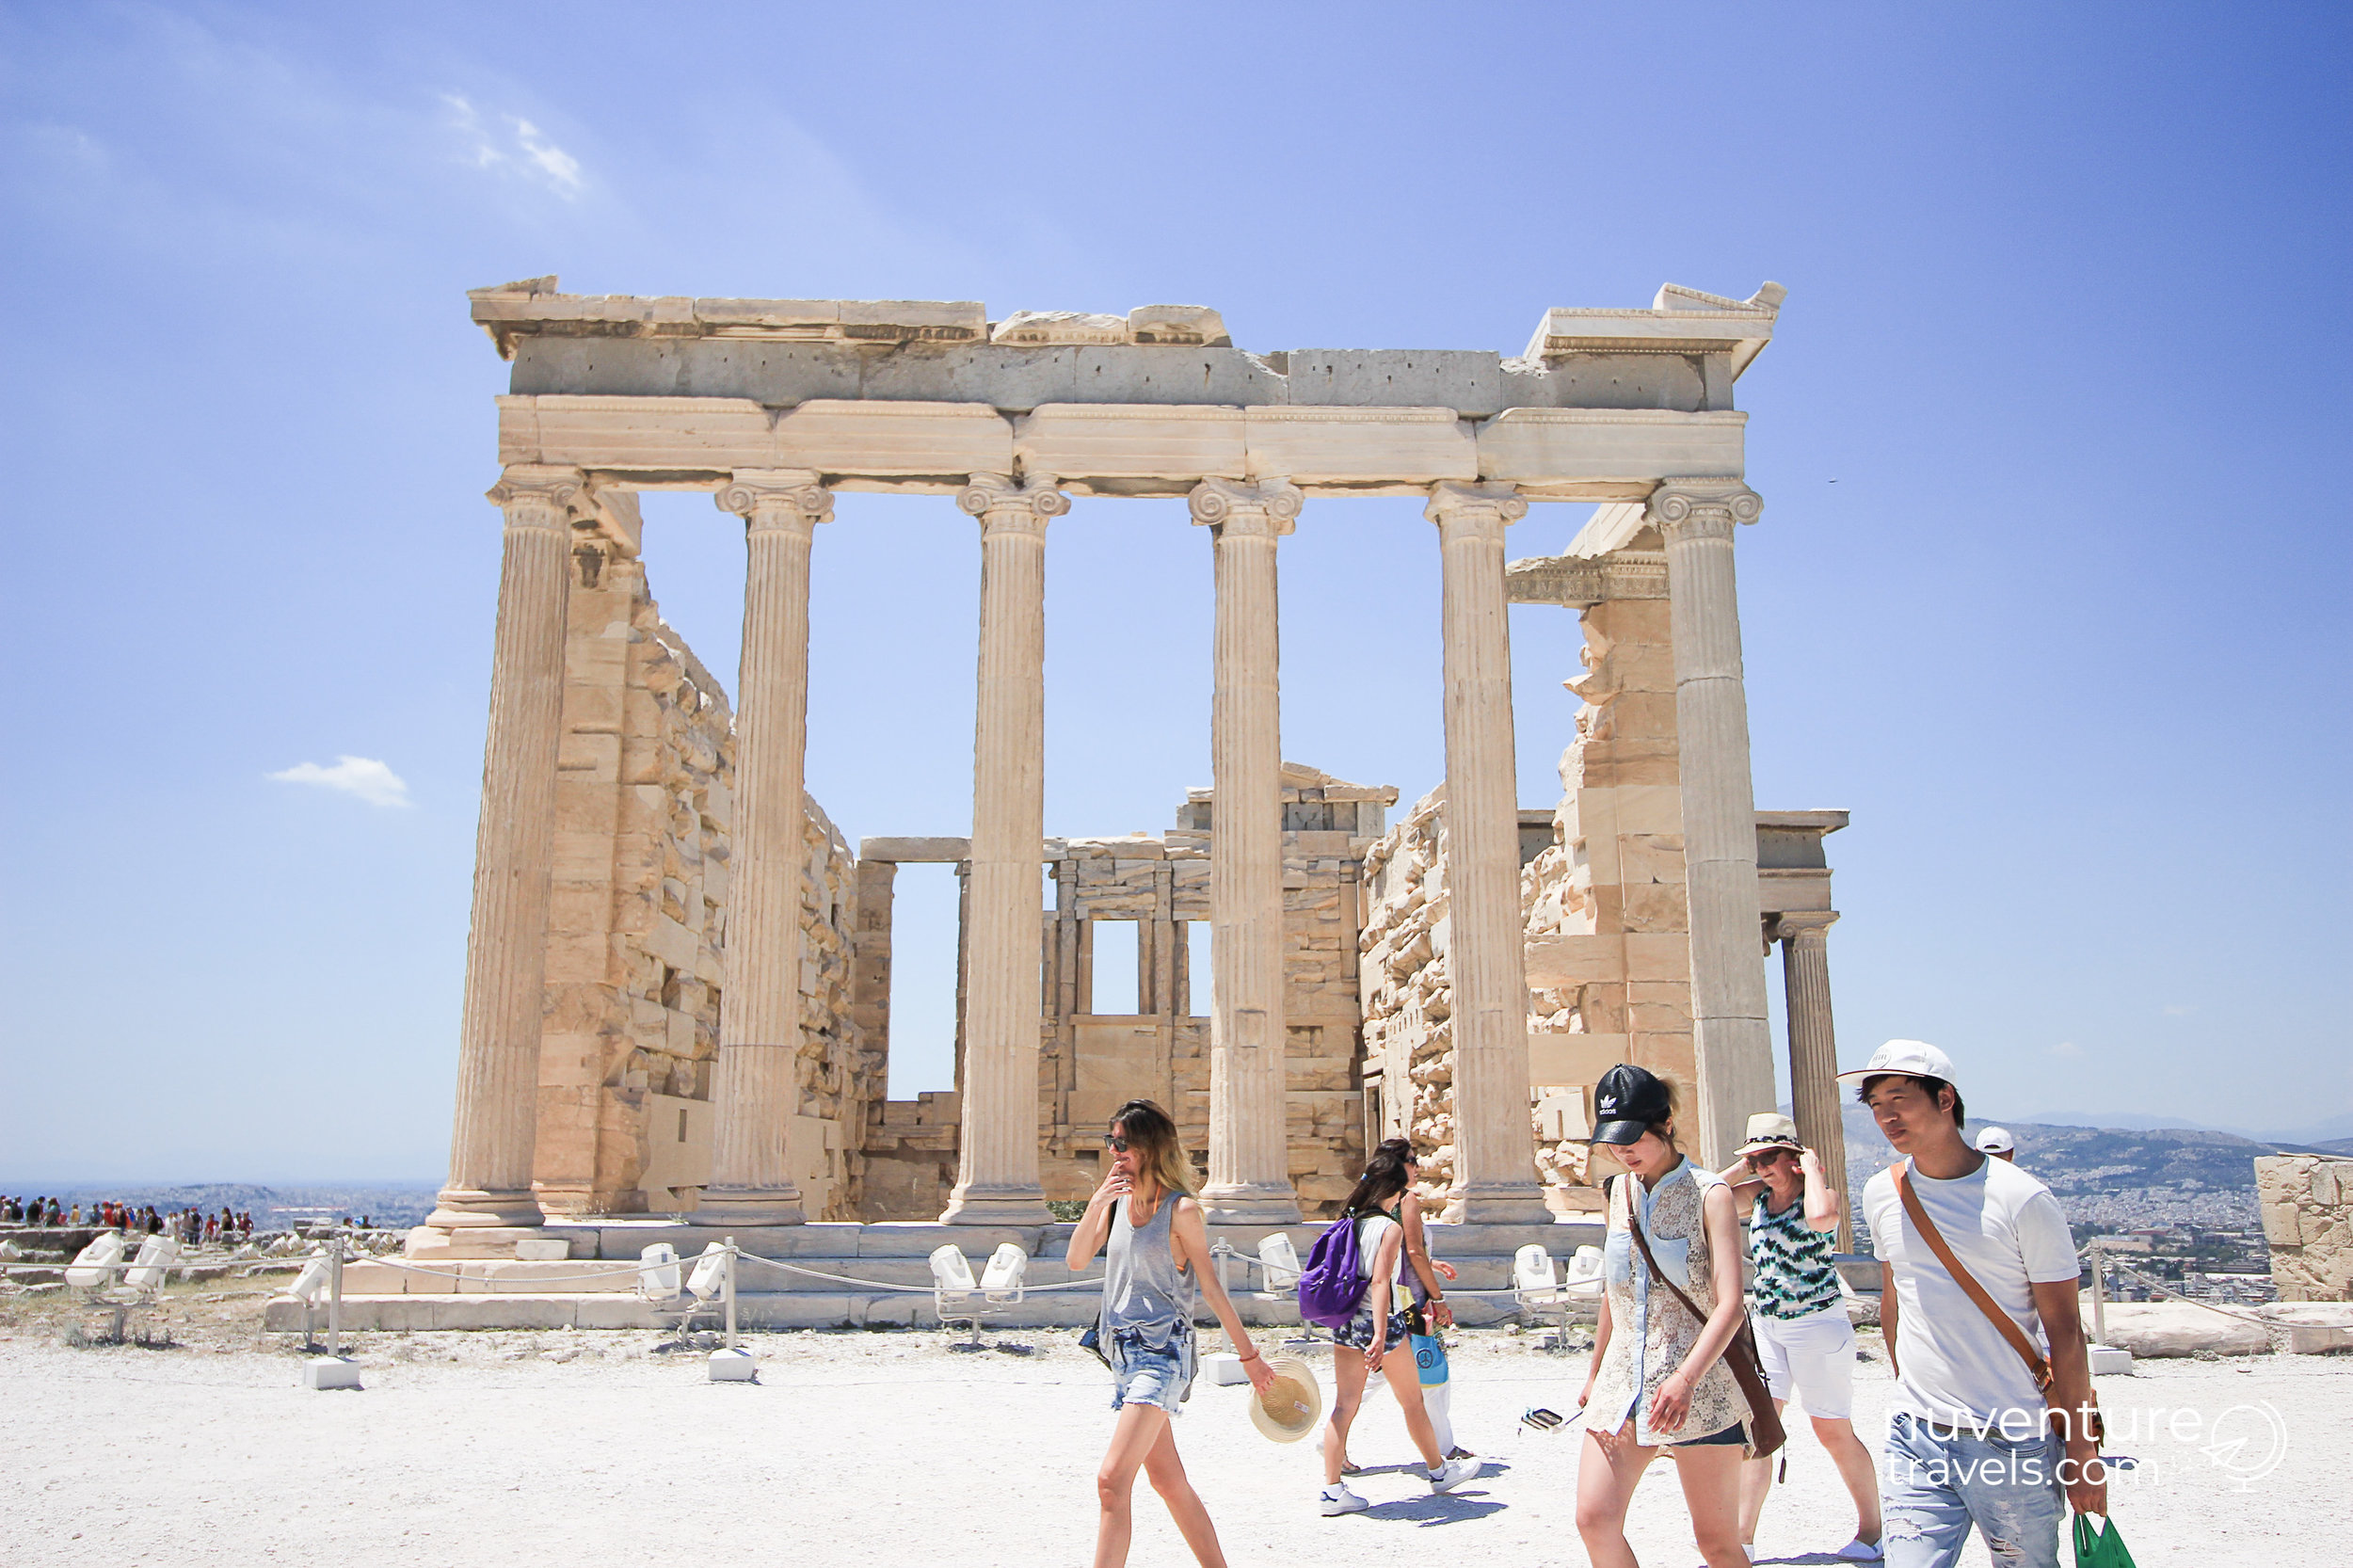 Tips to Visit the Parthenon and Acropolis nuventurertravels.com